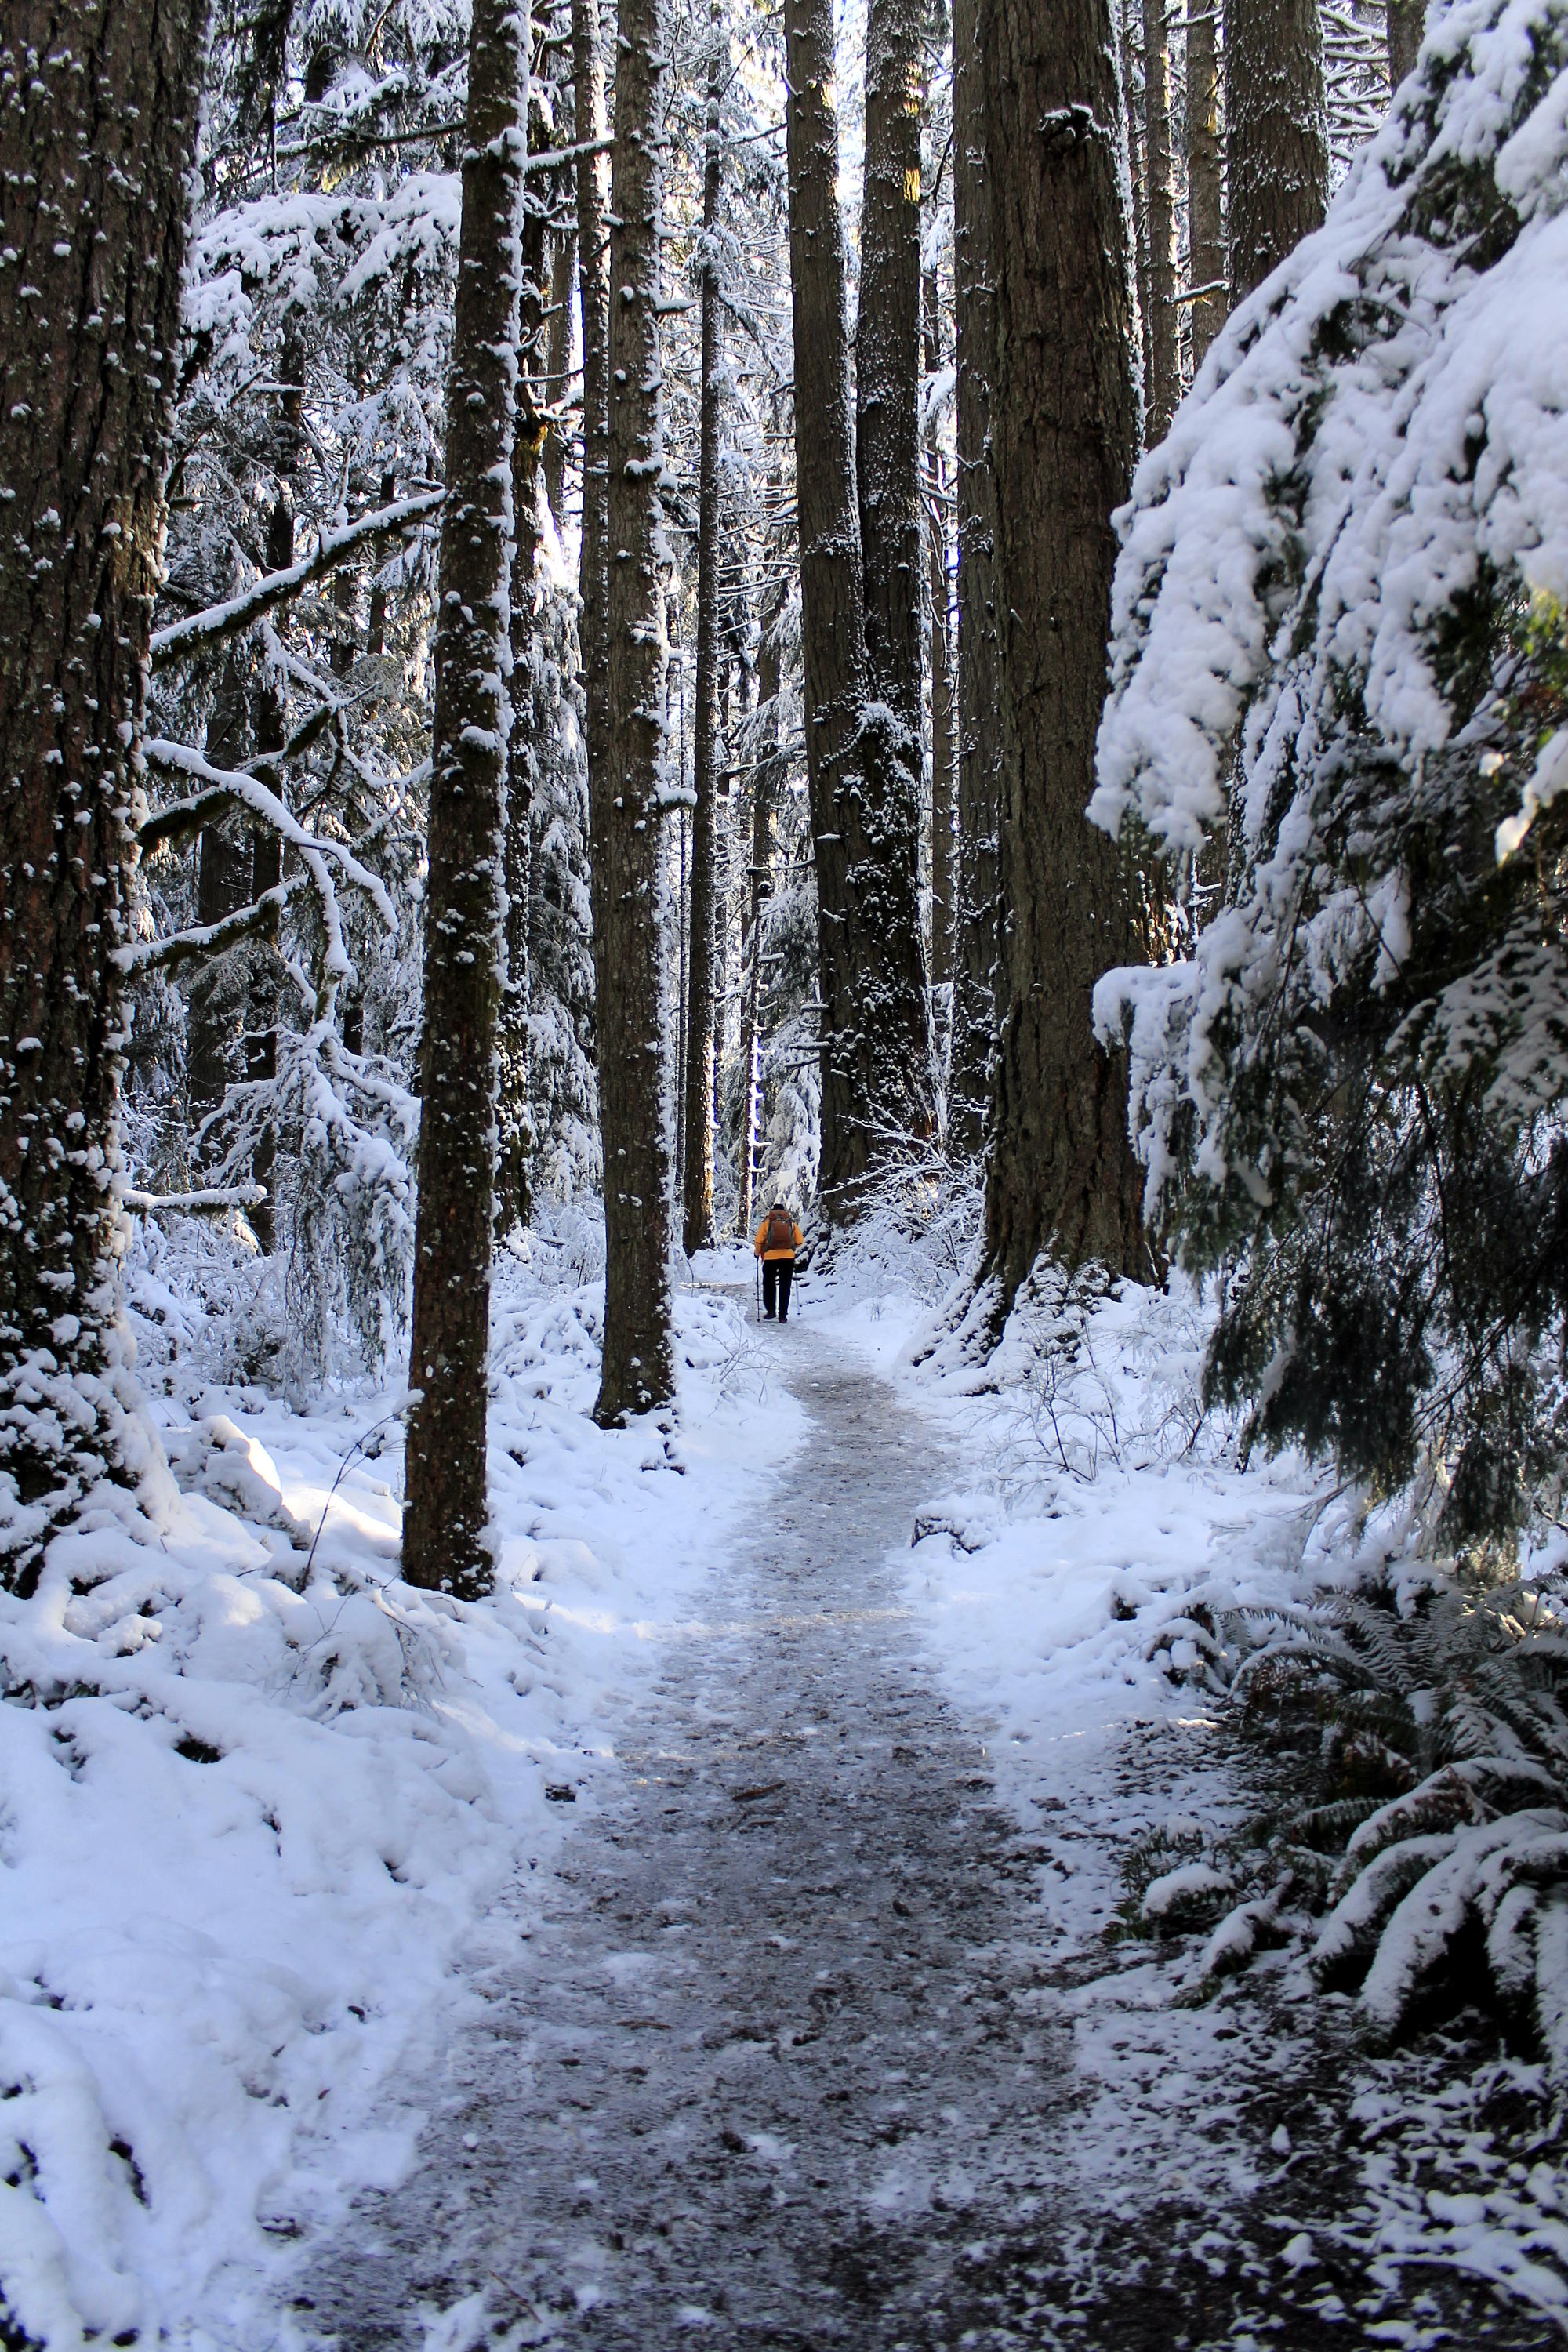 Hiking in Silver Falls State Park in three inches of fresh snow, January 2017. Silver Falls in the snow is one of the great experiences a hiker can have.